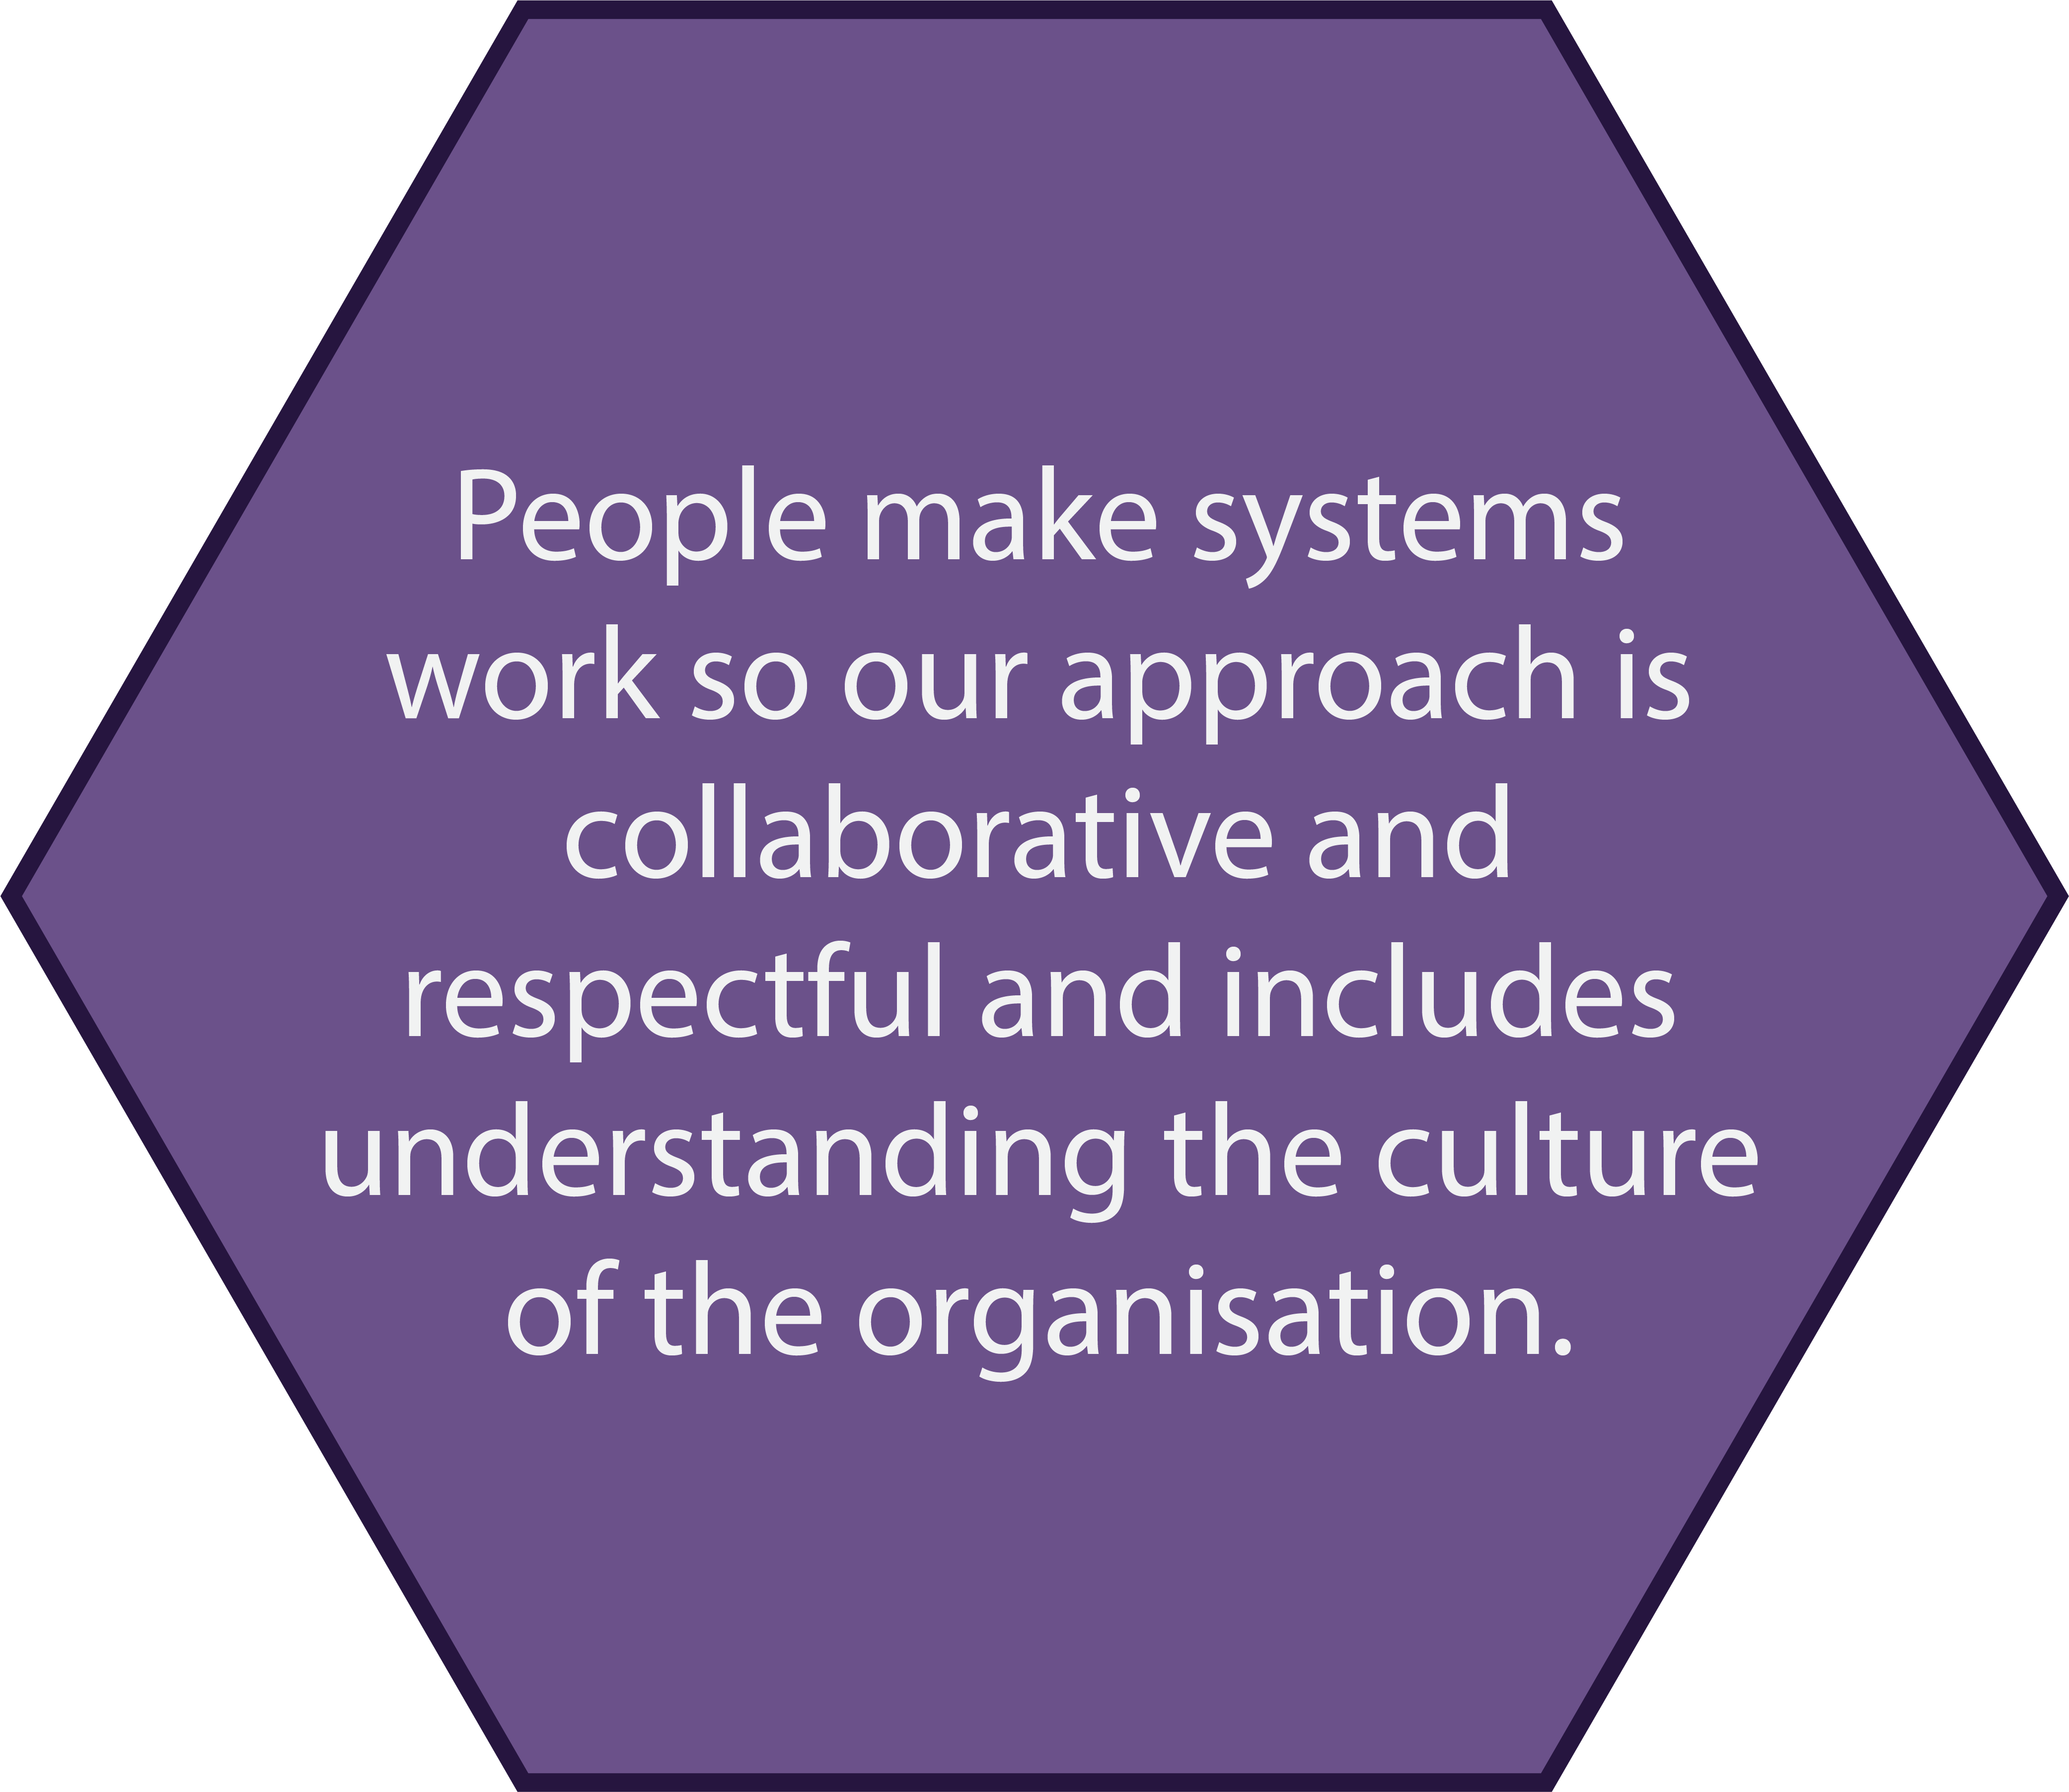 Collaborative and respectful, understanding organisations and their culture